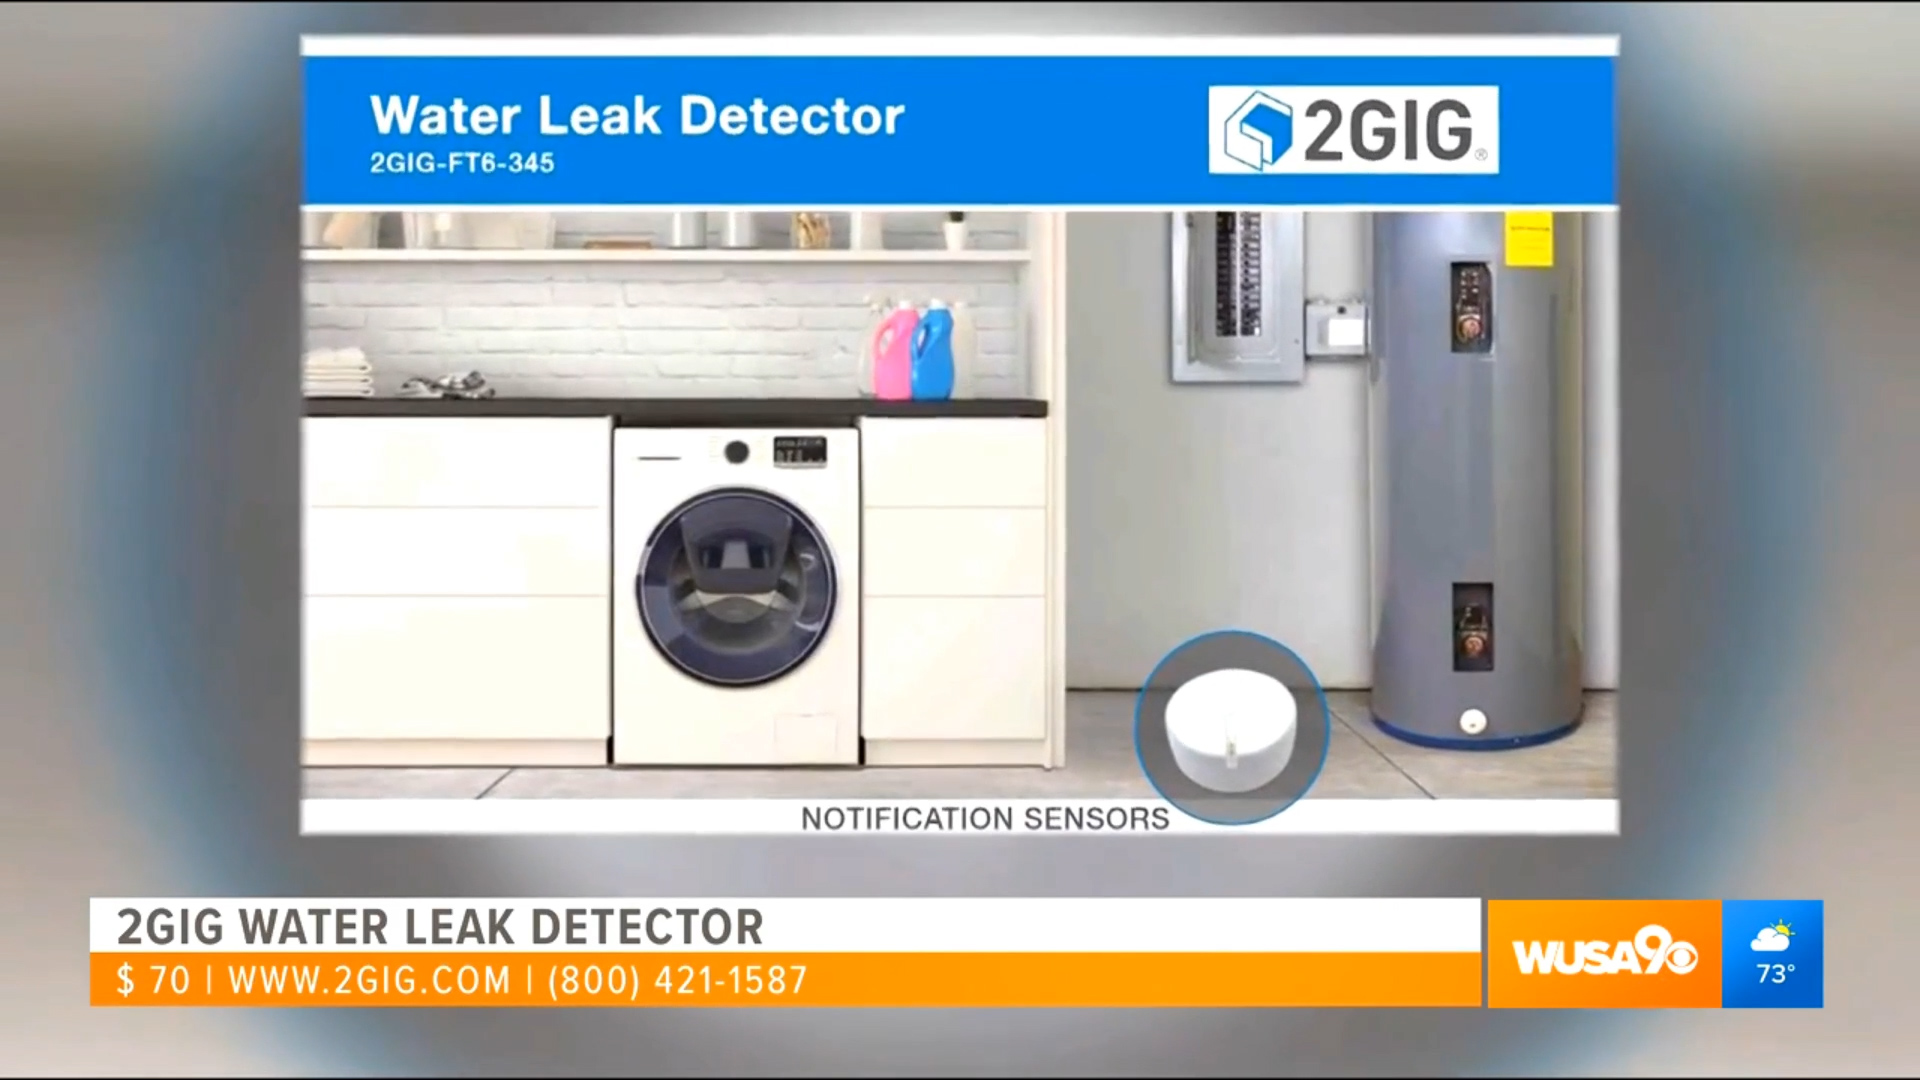 2GIG WATER LEAK DETECTOR - $70.00Shop Now